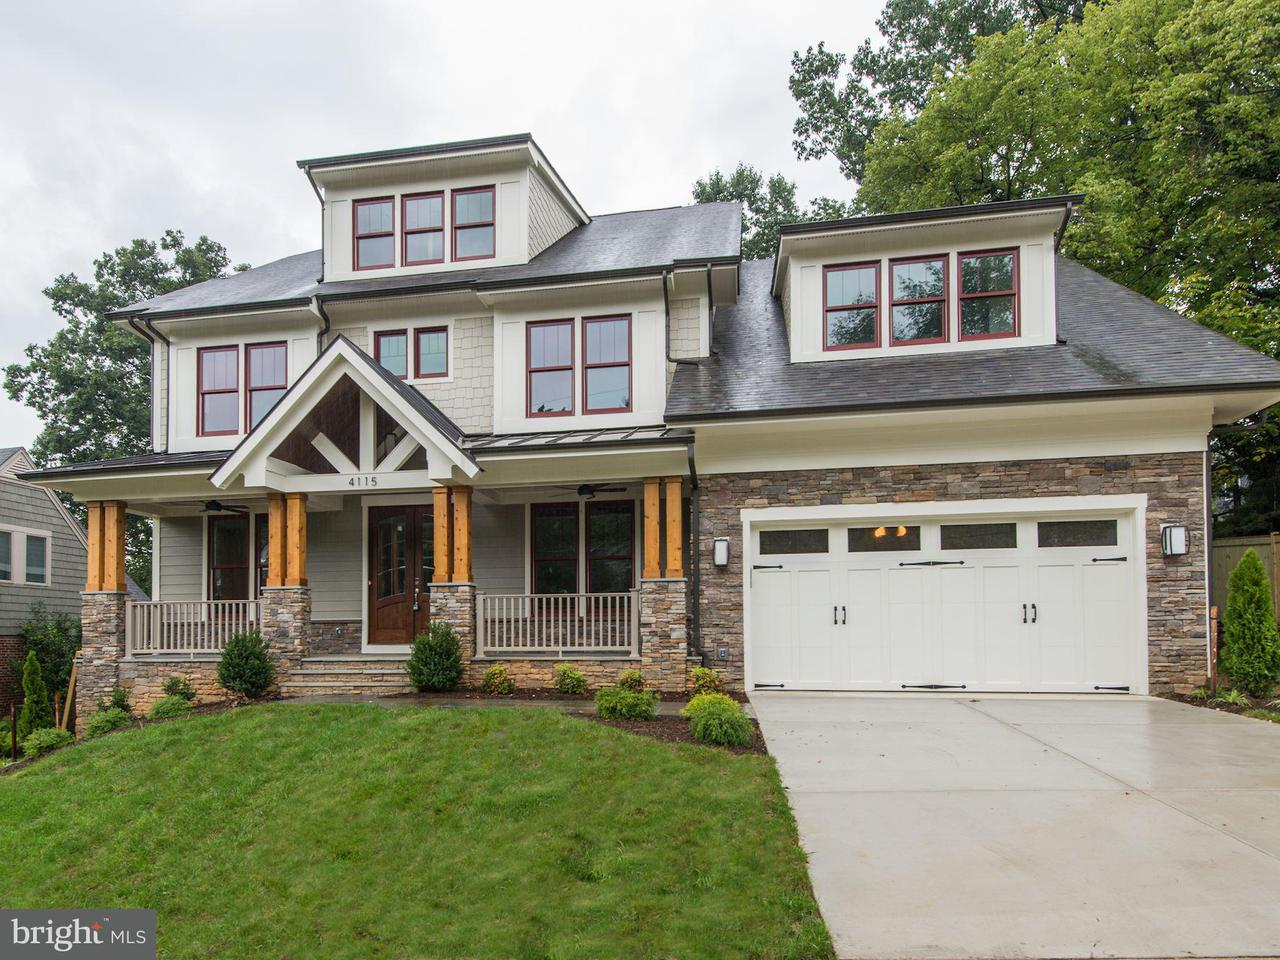 Single Family Home for Sale at 4115 34th St N 4115 34th St N Arlington, Virginia 22207 United States